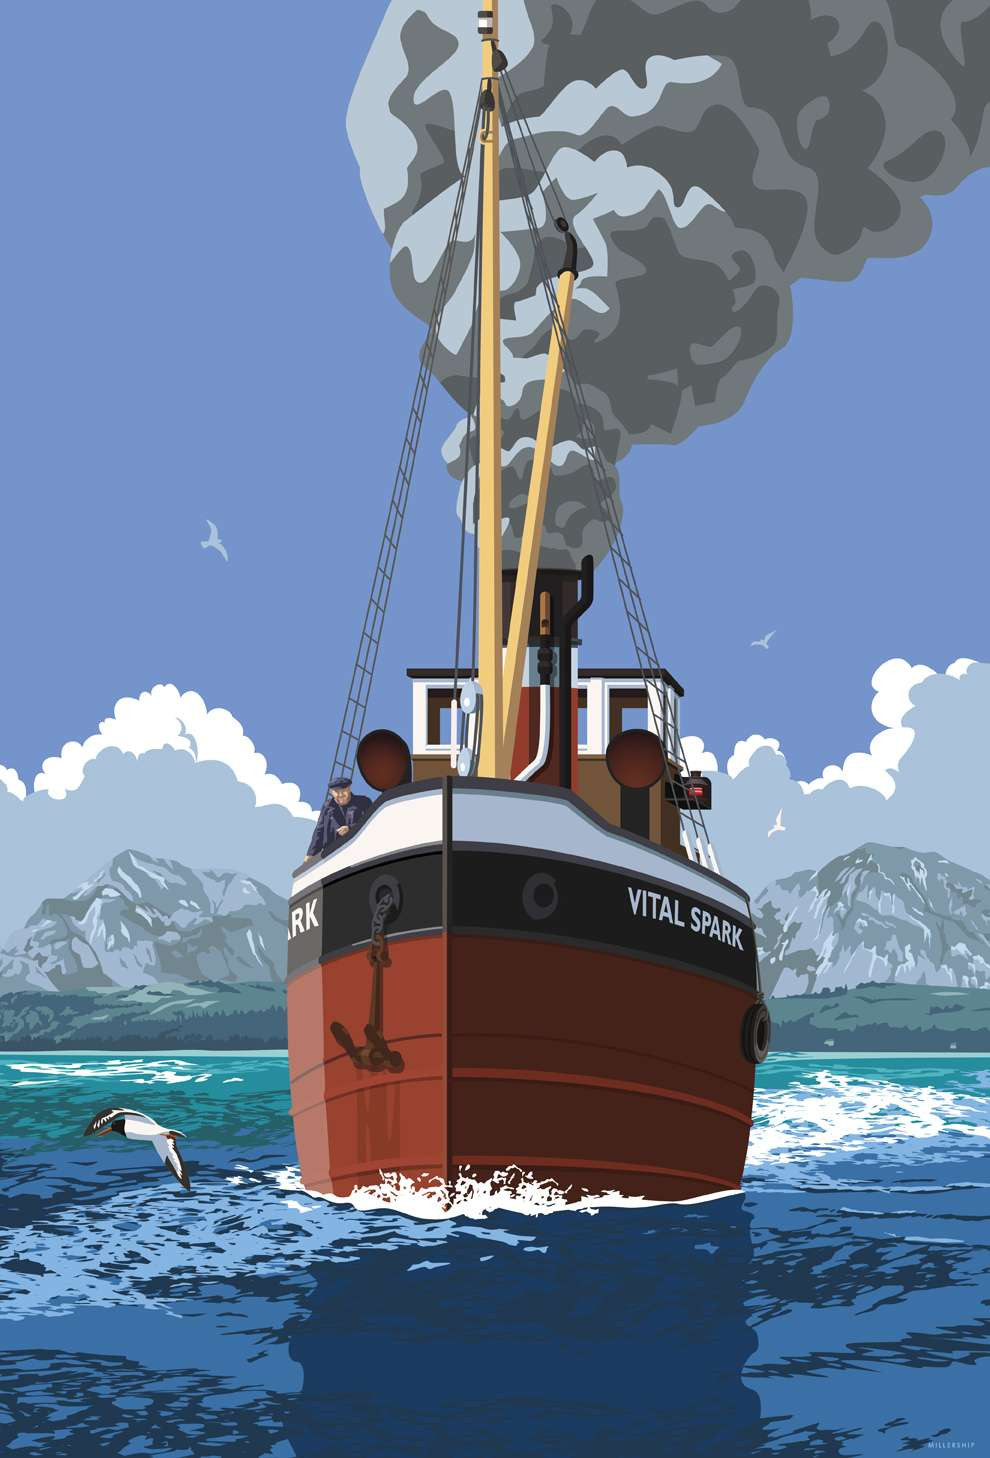 Stephen  Millership, Vector illustration in a travel poster retro style. Fishing boat sailing in the sea.